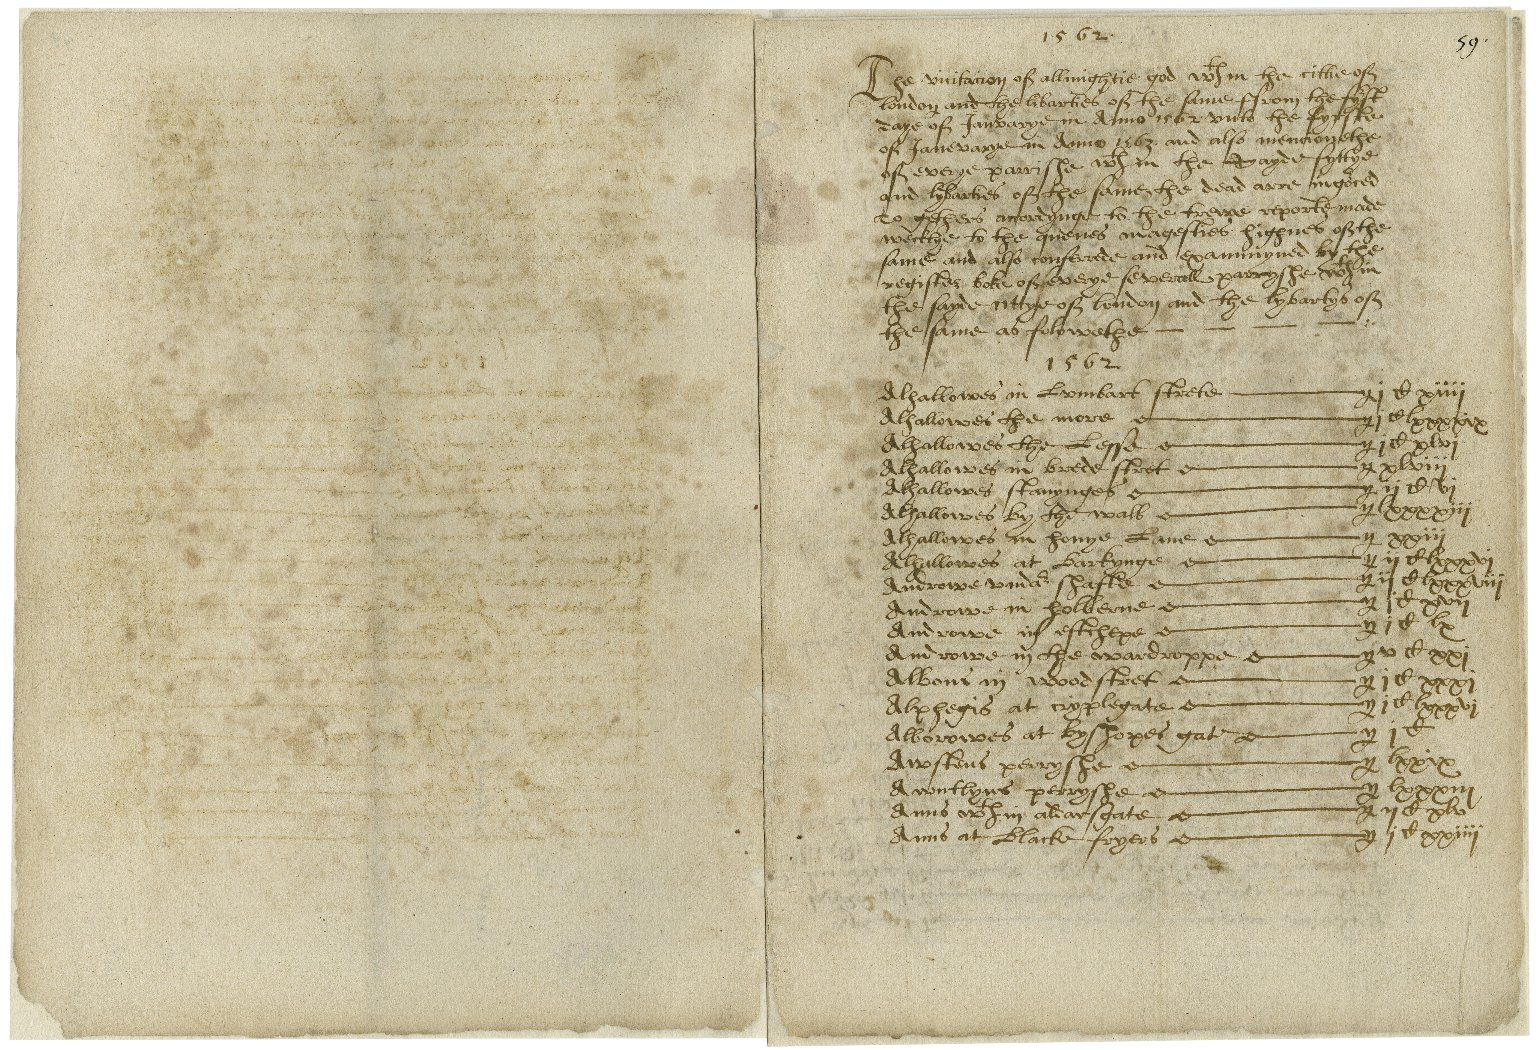 Summary of the bills of mortality based on the weekly returns supplied by the parishes within the city of London and its liberties and Westminster [manuscript], January 1, 1563-January 1, 1564